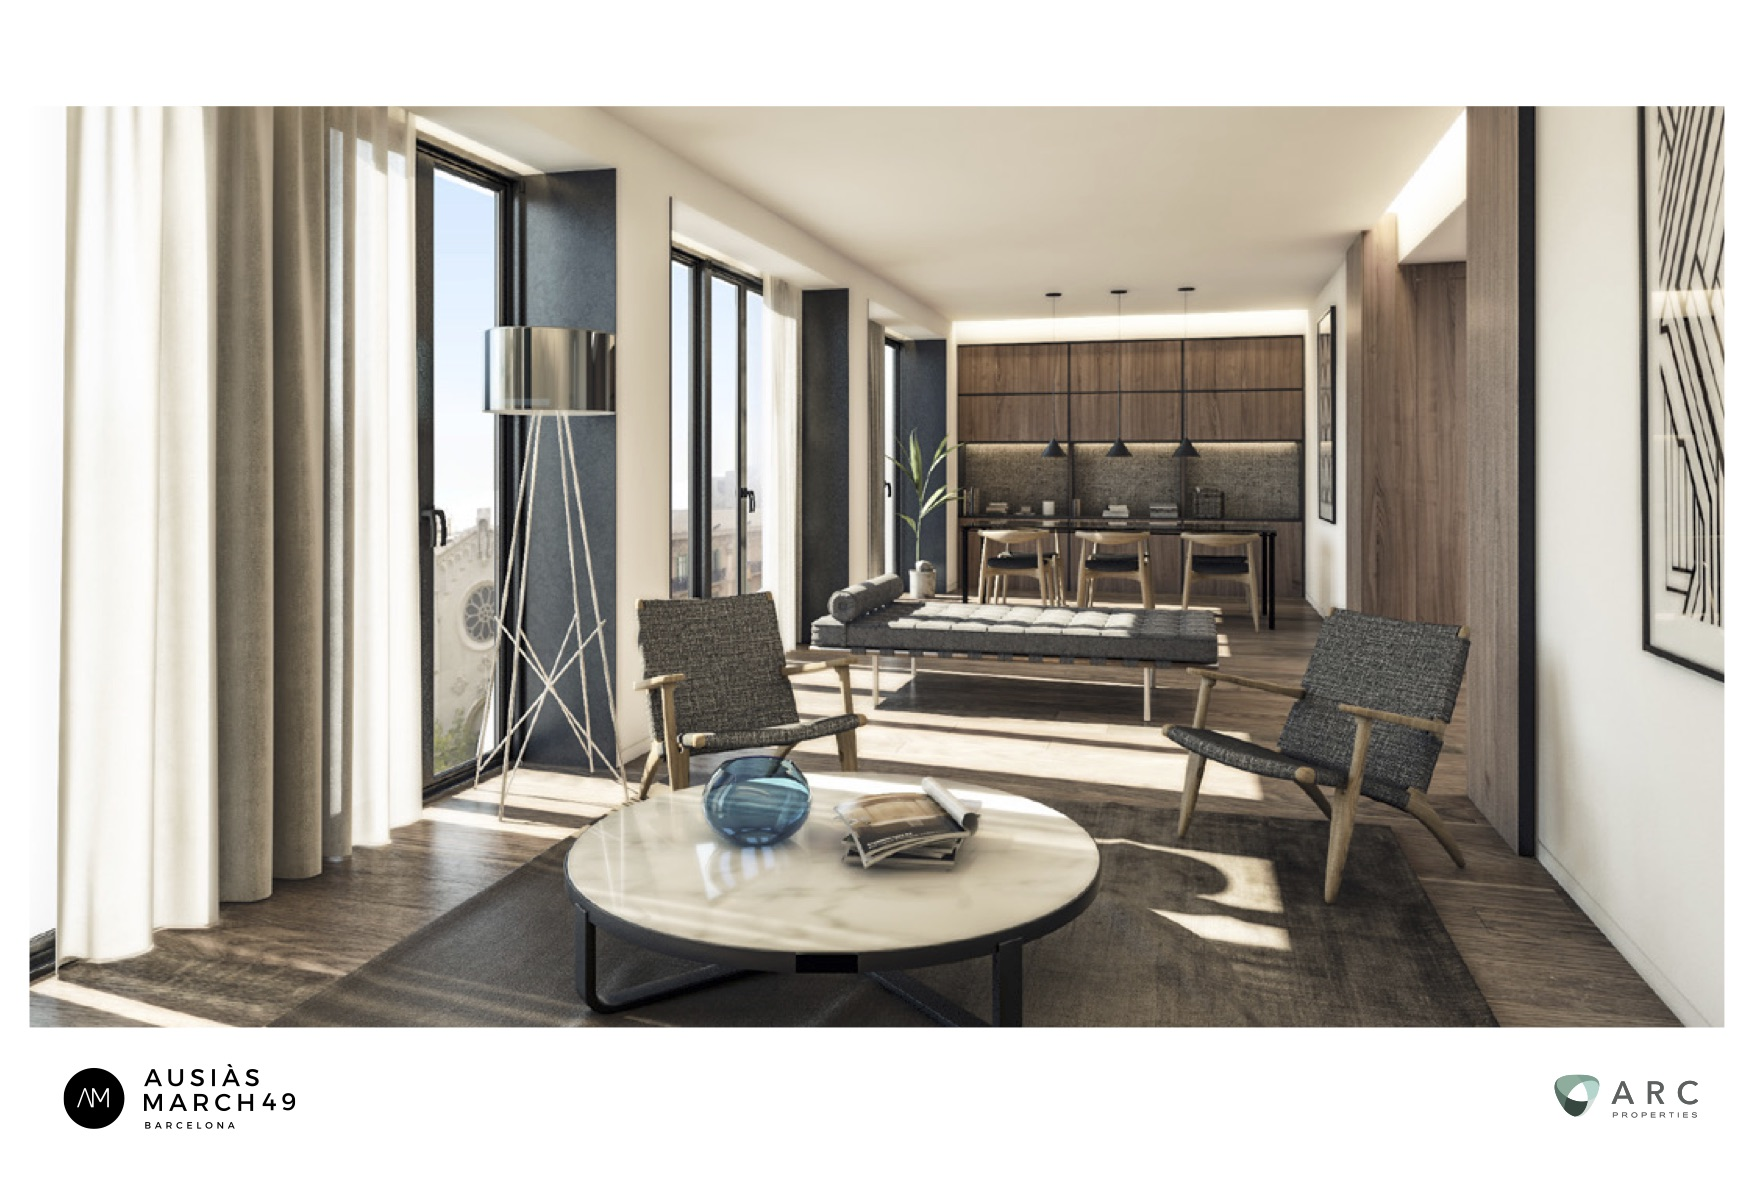 Ausias March 49 barcelona new development home for sale from arc properties